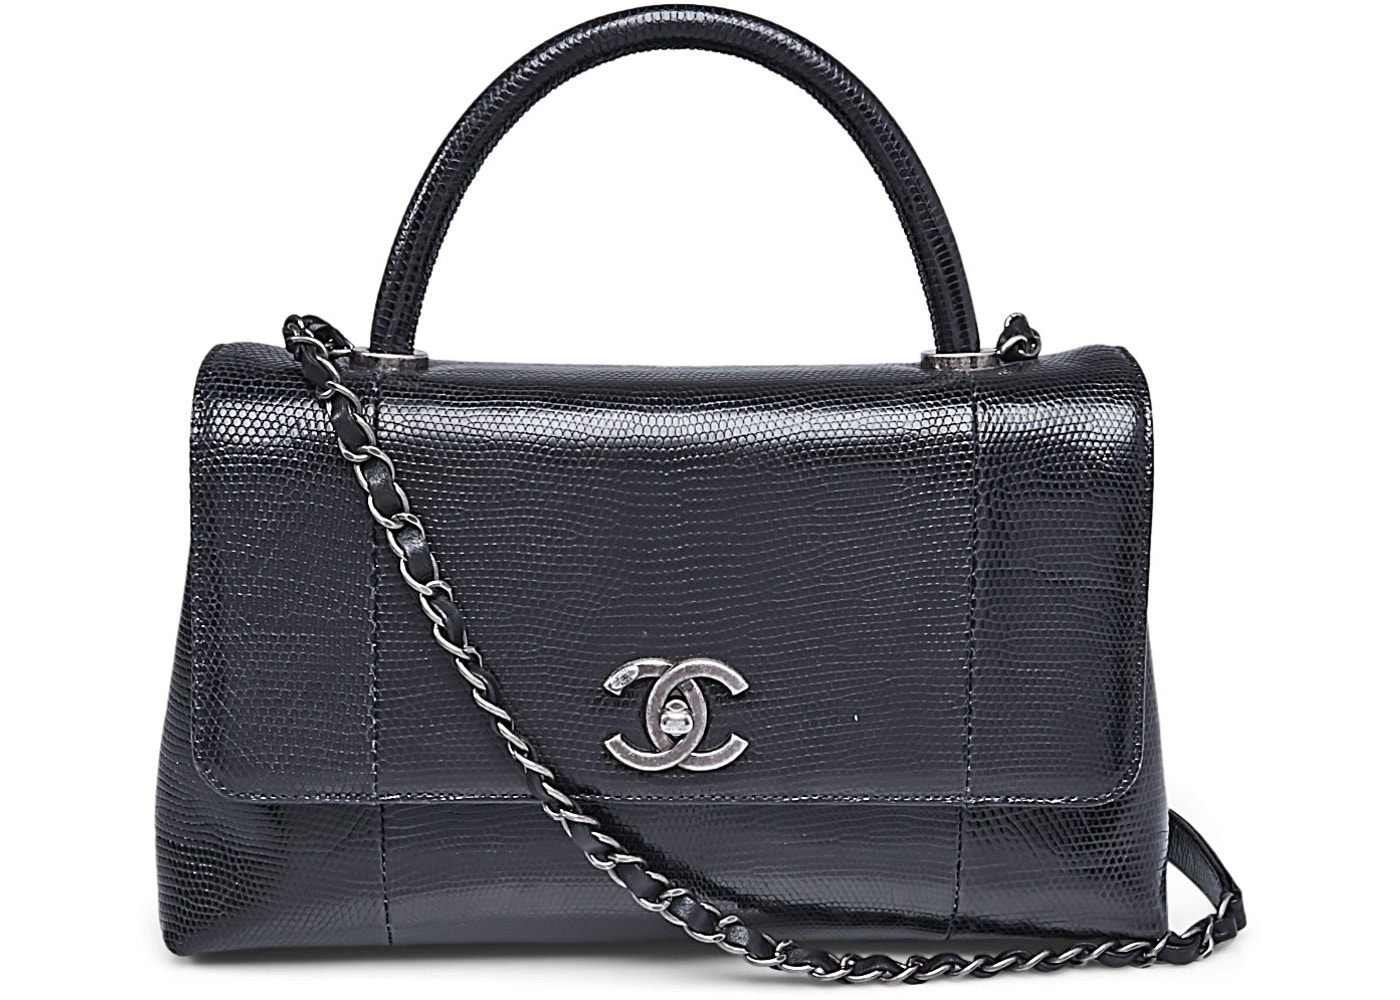 d1868292b258 Chanel Coco Handle Flap Bag Price | Stanford Center for Opportunity ...